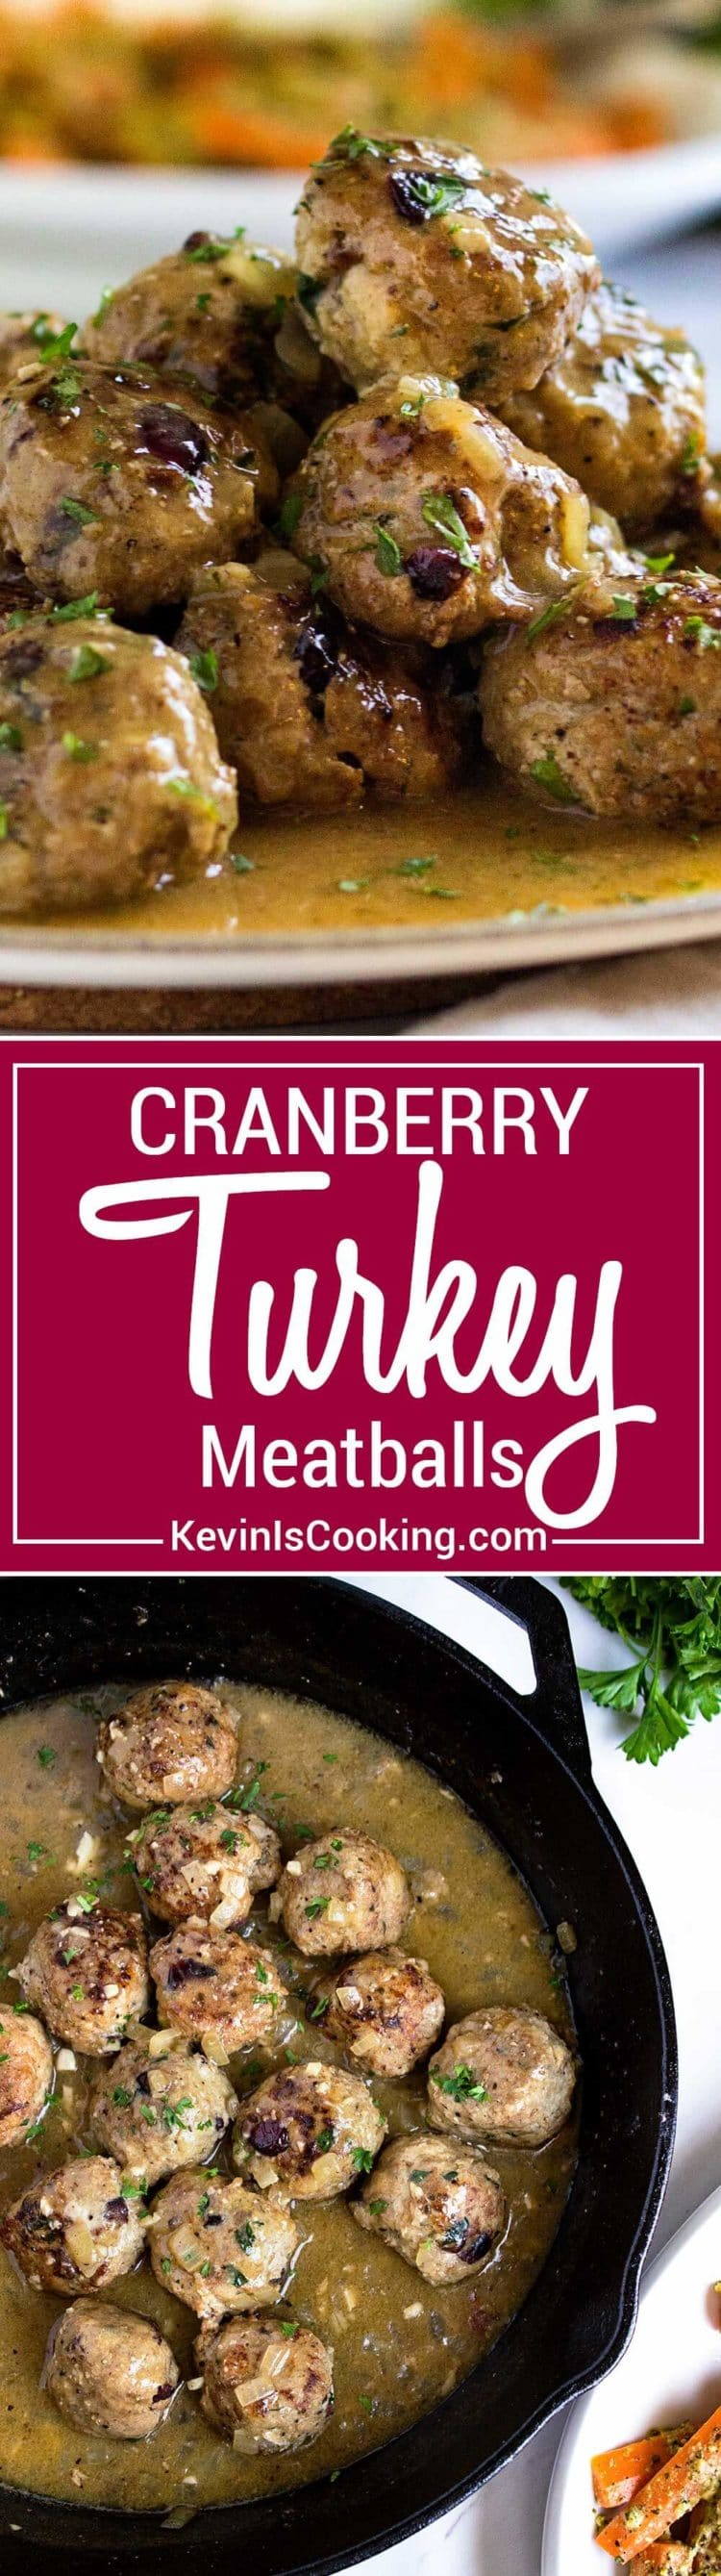 Super moist, tender and packed with flavor, these Cranberry Turkey Meatballs are great any time of year! Serve as an appetizer or with a side for a meal.